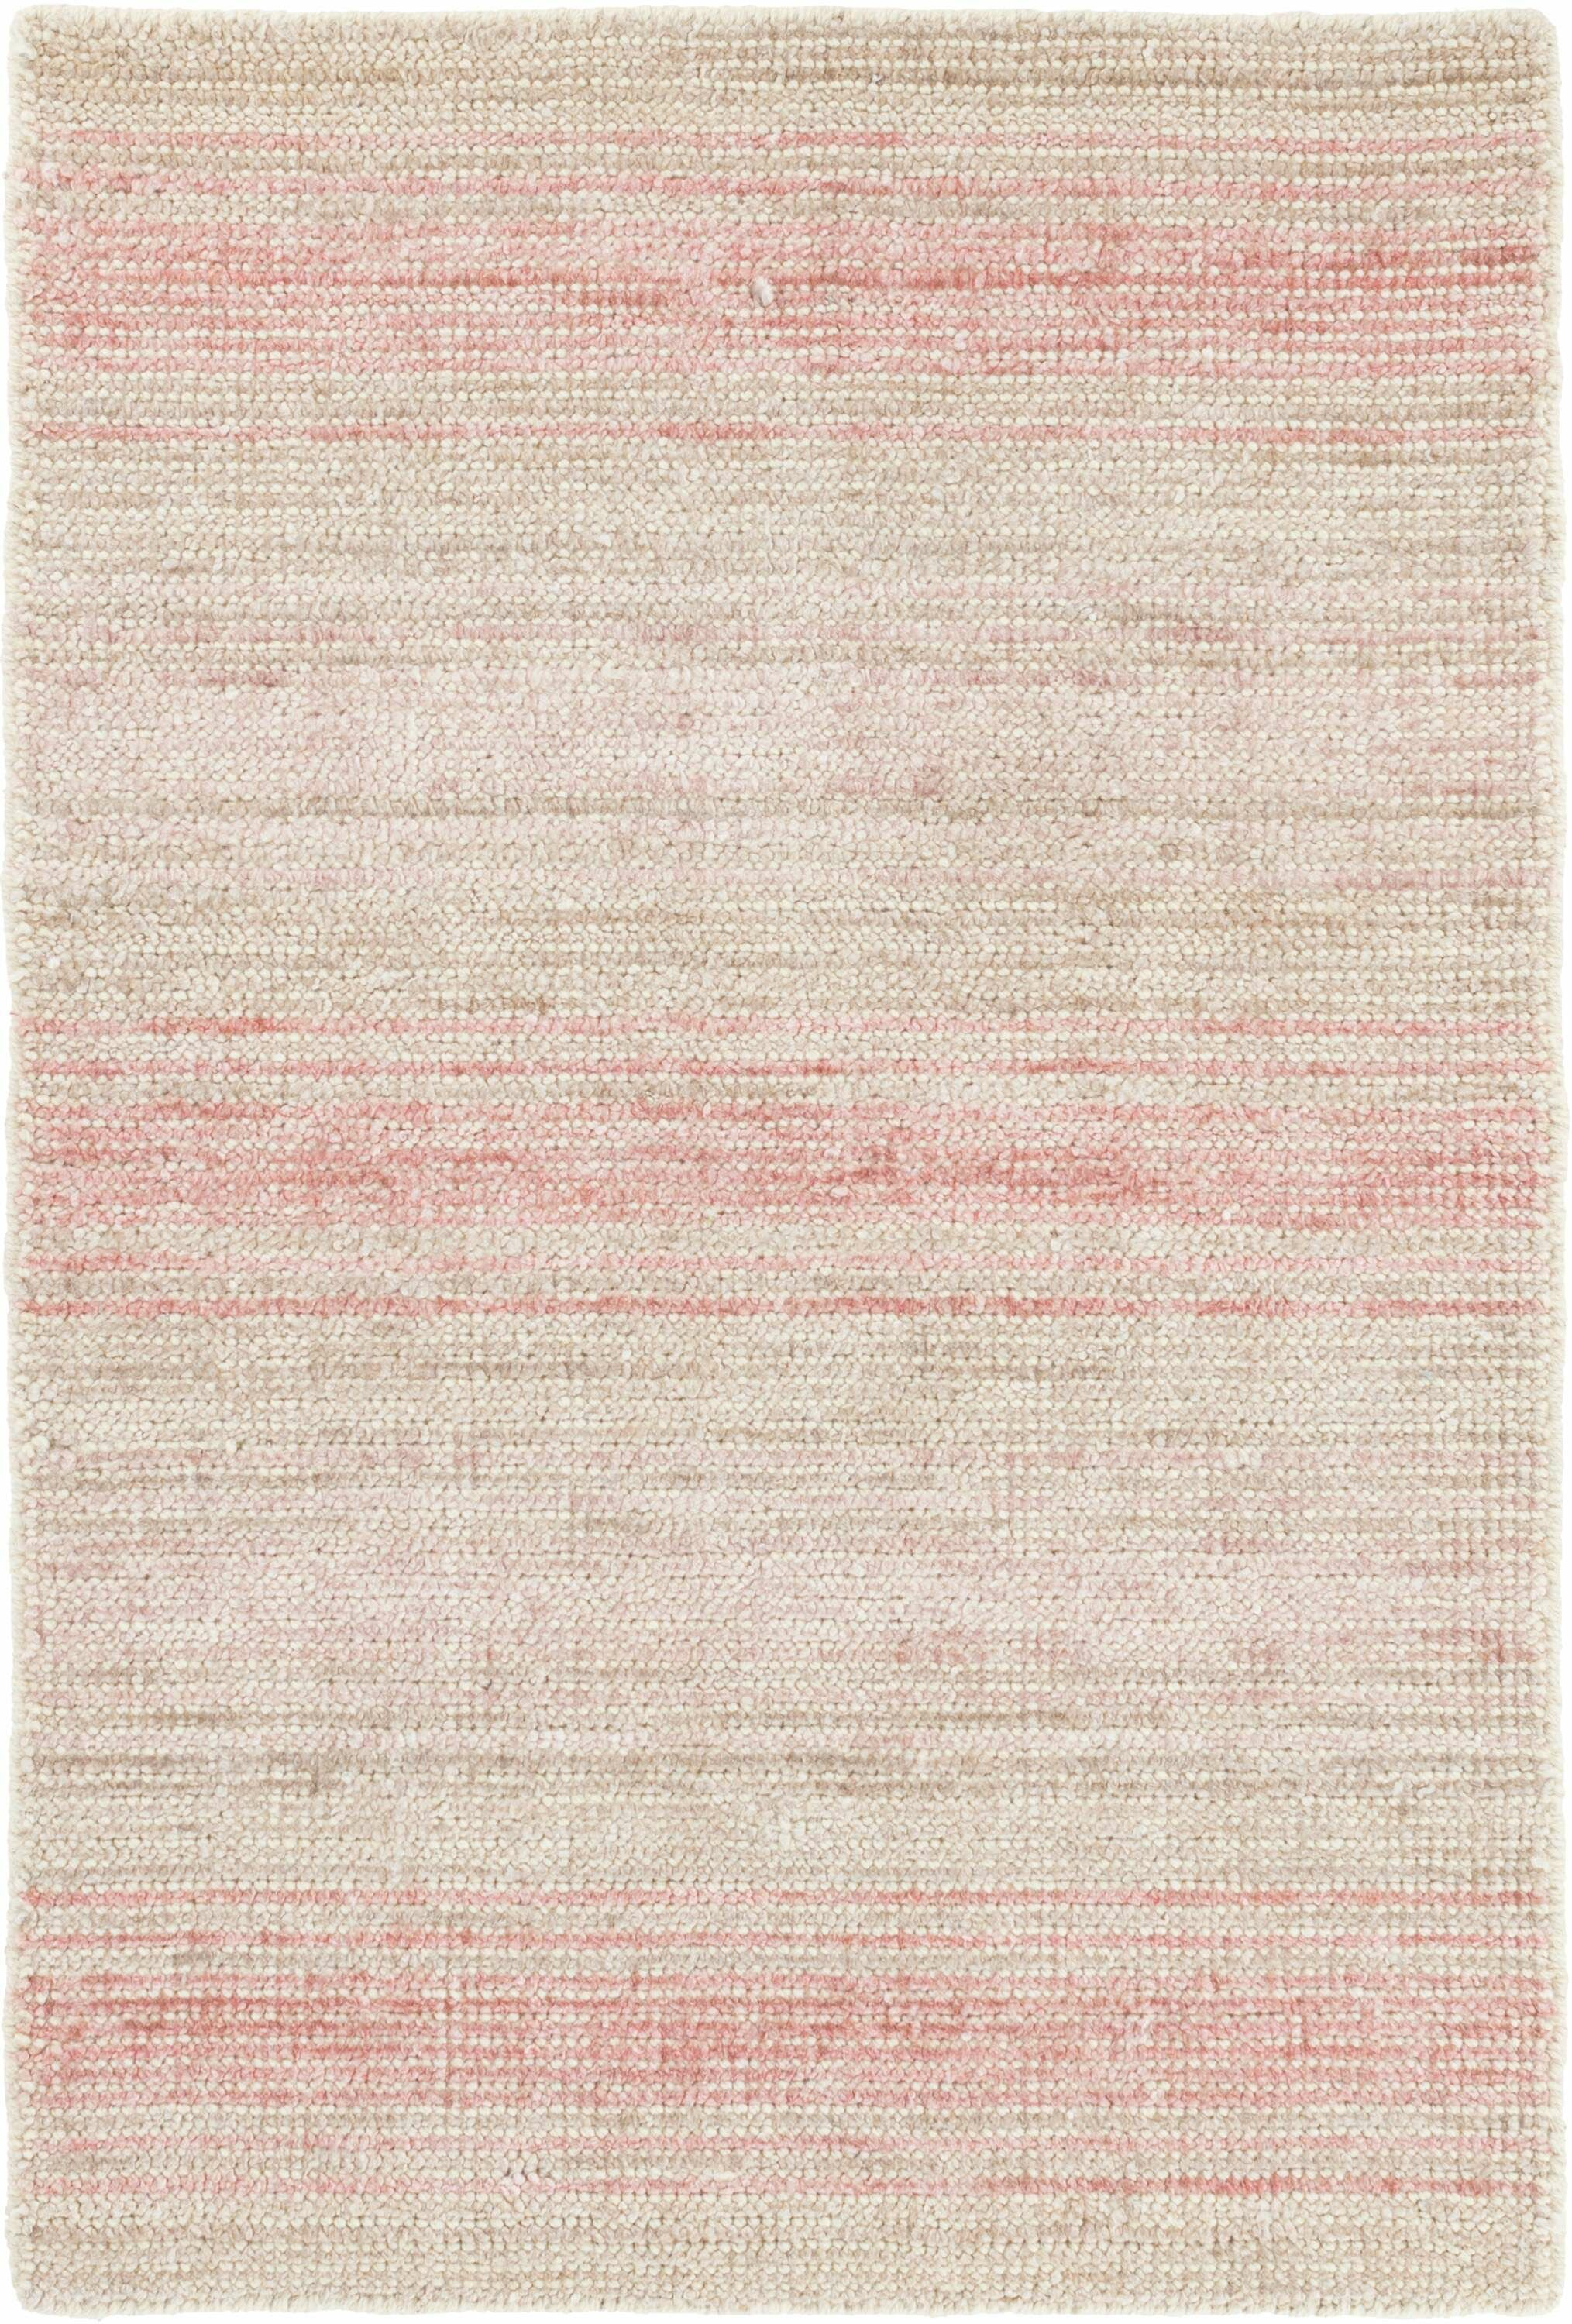 Dash And Albert Rugs Aurora Hand Knotted Ivory Pink Area Rug Wayfair